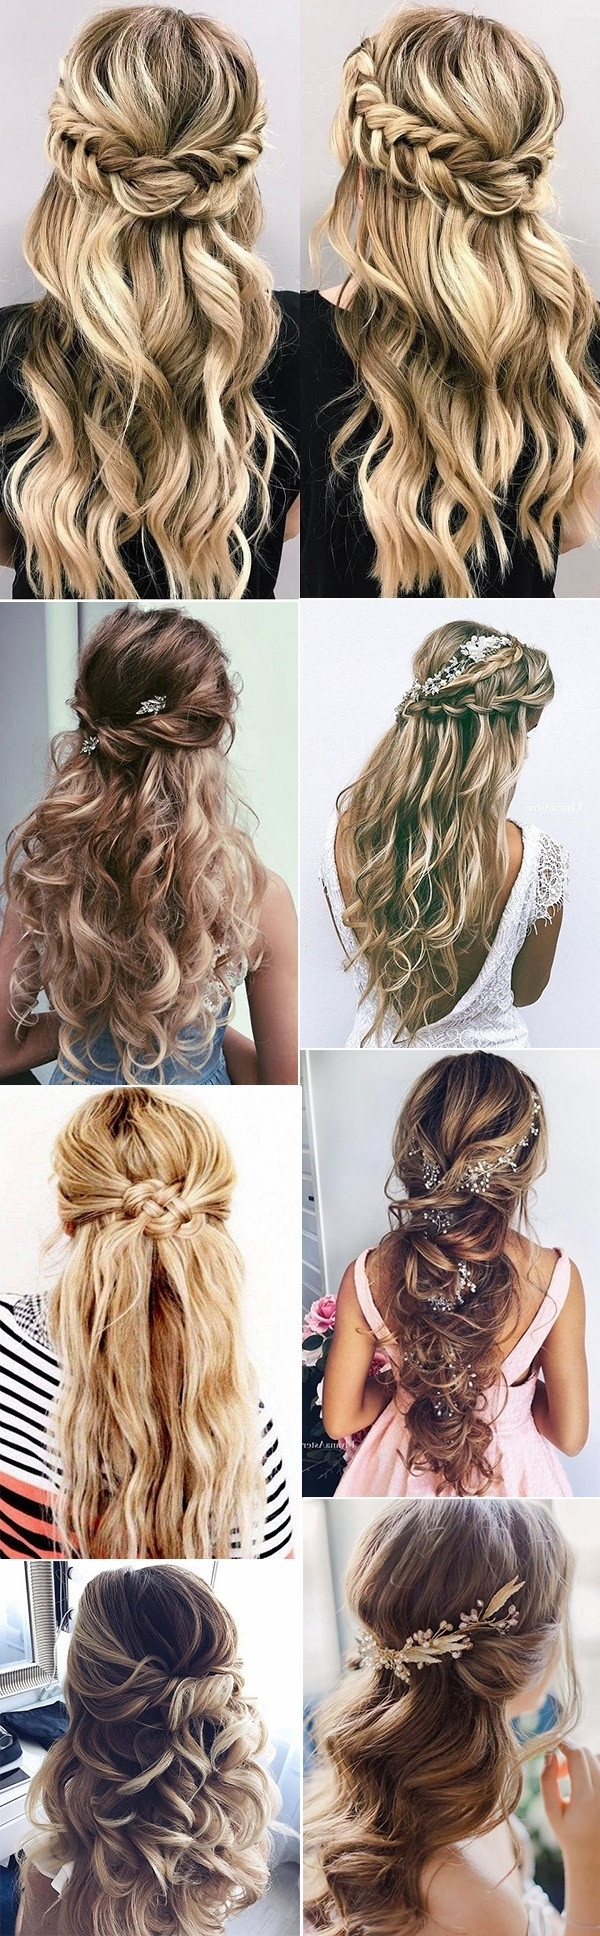 Favorite Down Long Hair Wedding Hairstyles For 15 Chic Half Up Half Down Wedding Hairstyles For Long Hair (View 9 of 15)